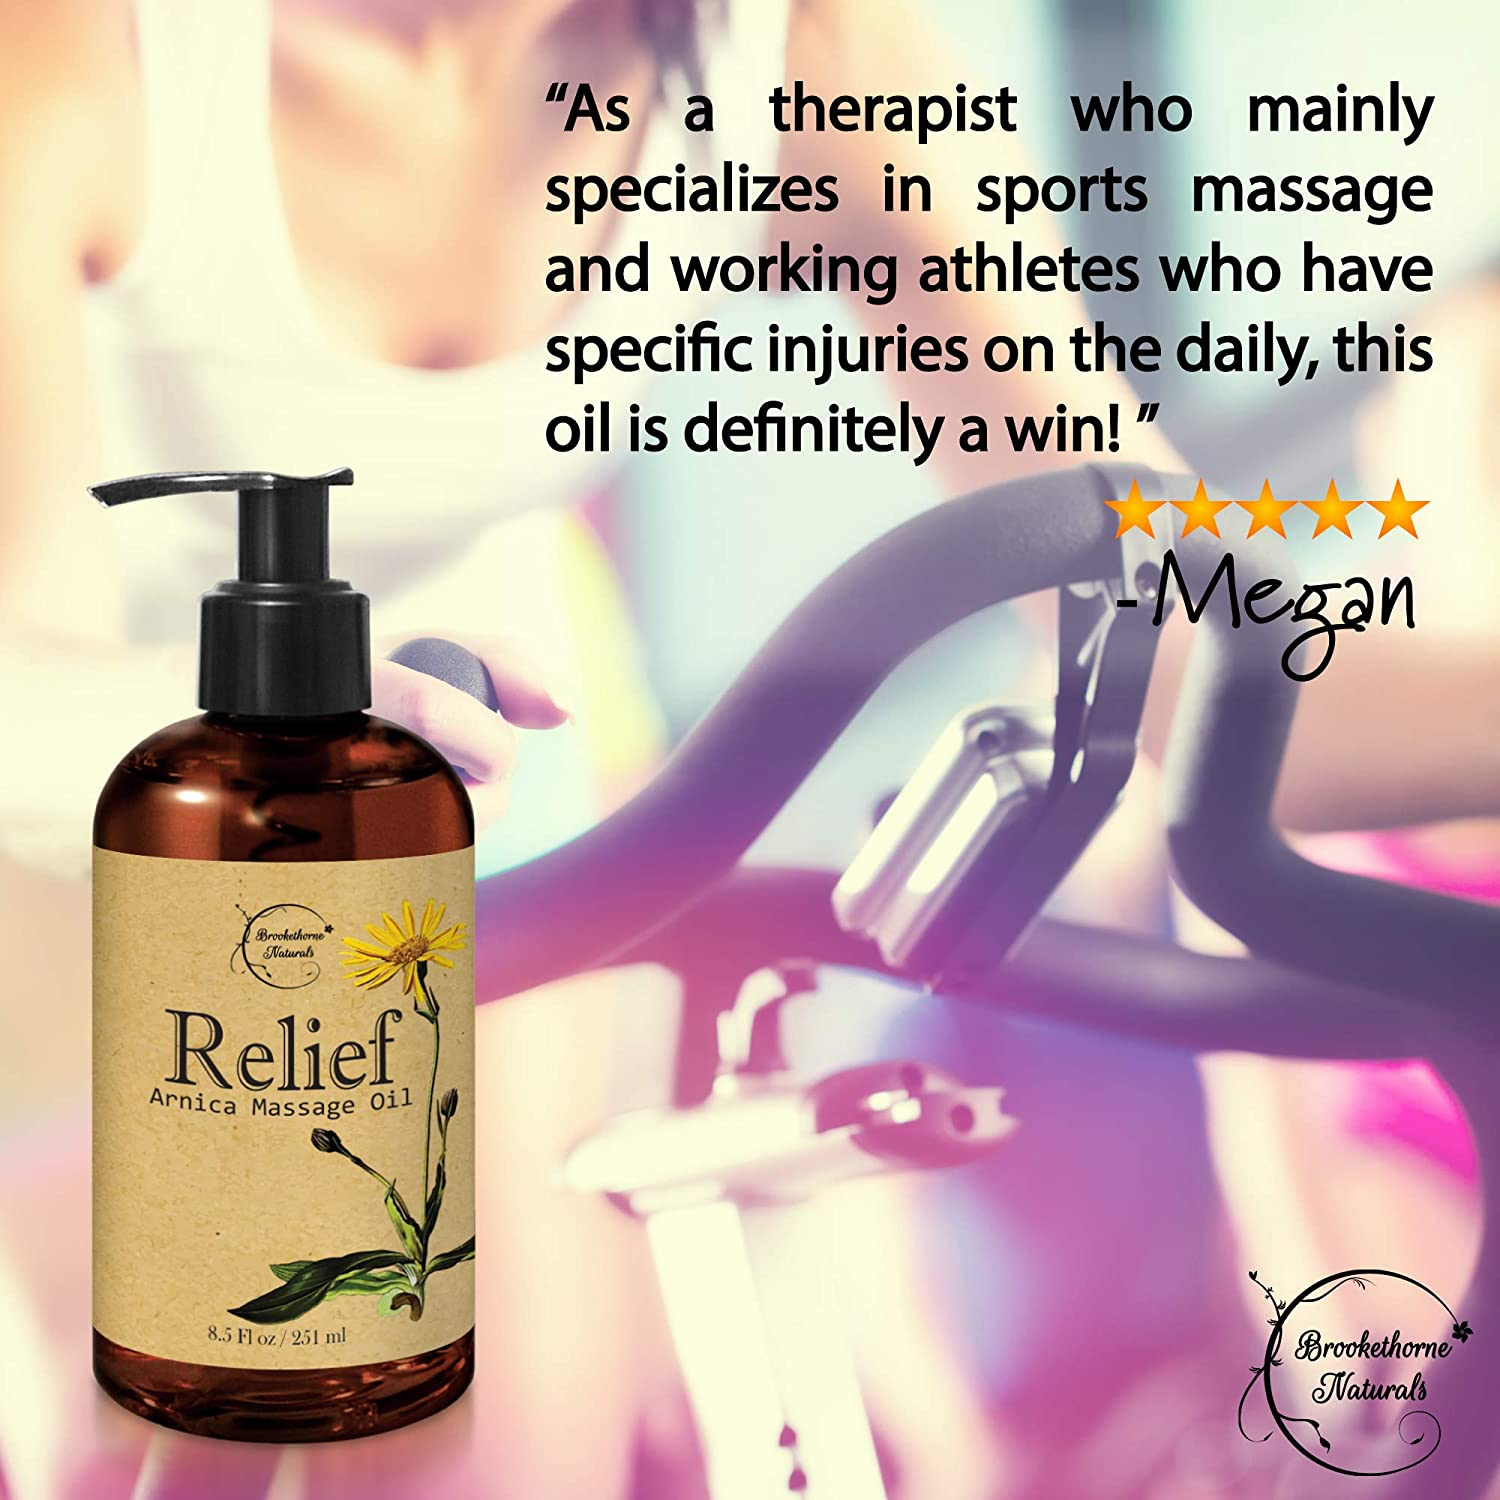 Relief Arnica Massage Oil – Great for Sports & Athletic Therapeutic Massage – All Natural - Arnica Montana for Sore Muscle Relief. Contains Sweet Almond, Jojoba, Grapeseed & Essential Oils 8.5oz: Health & Personal Care